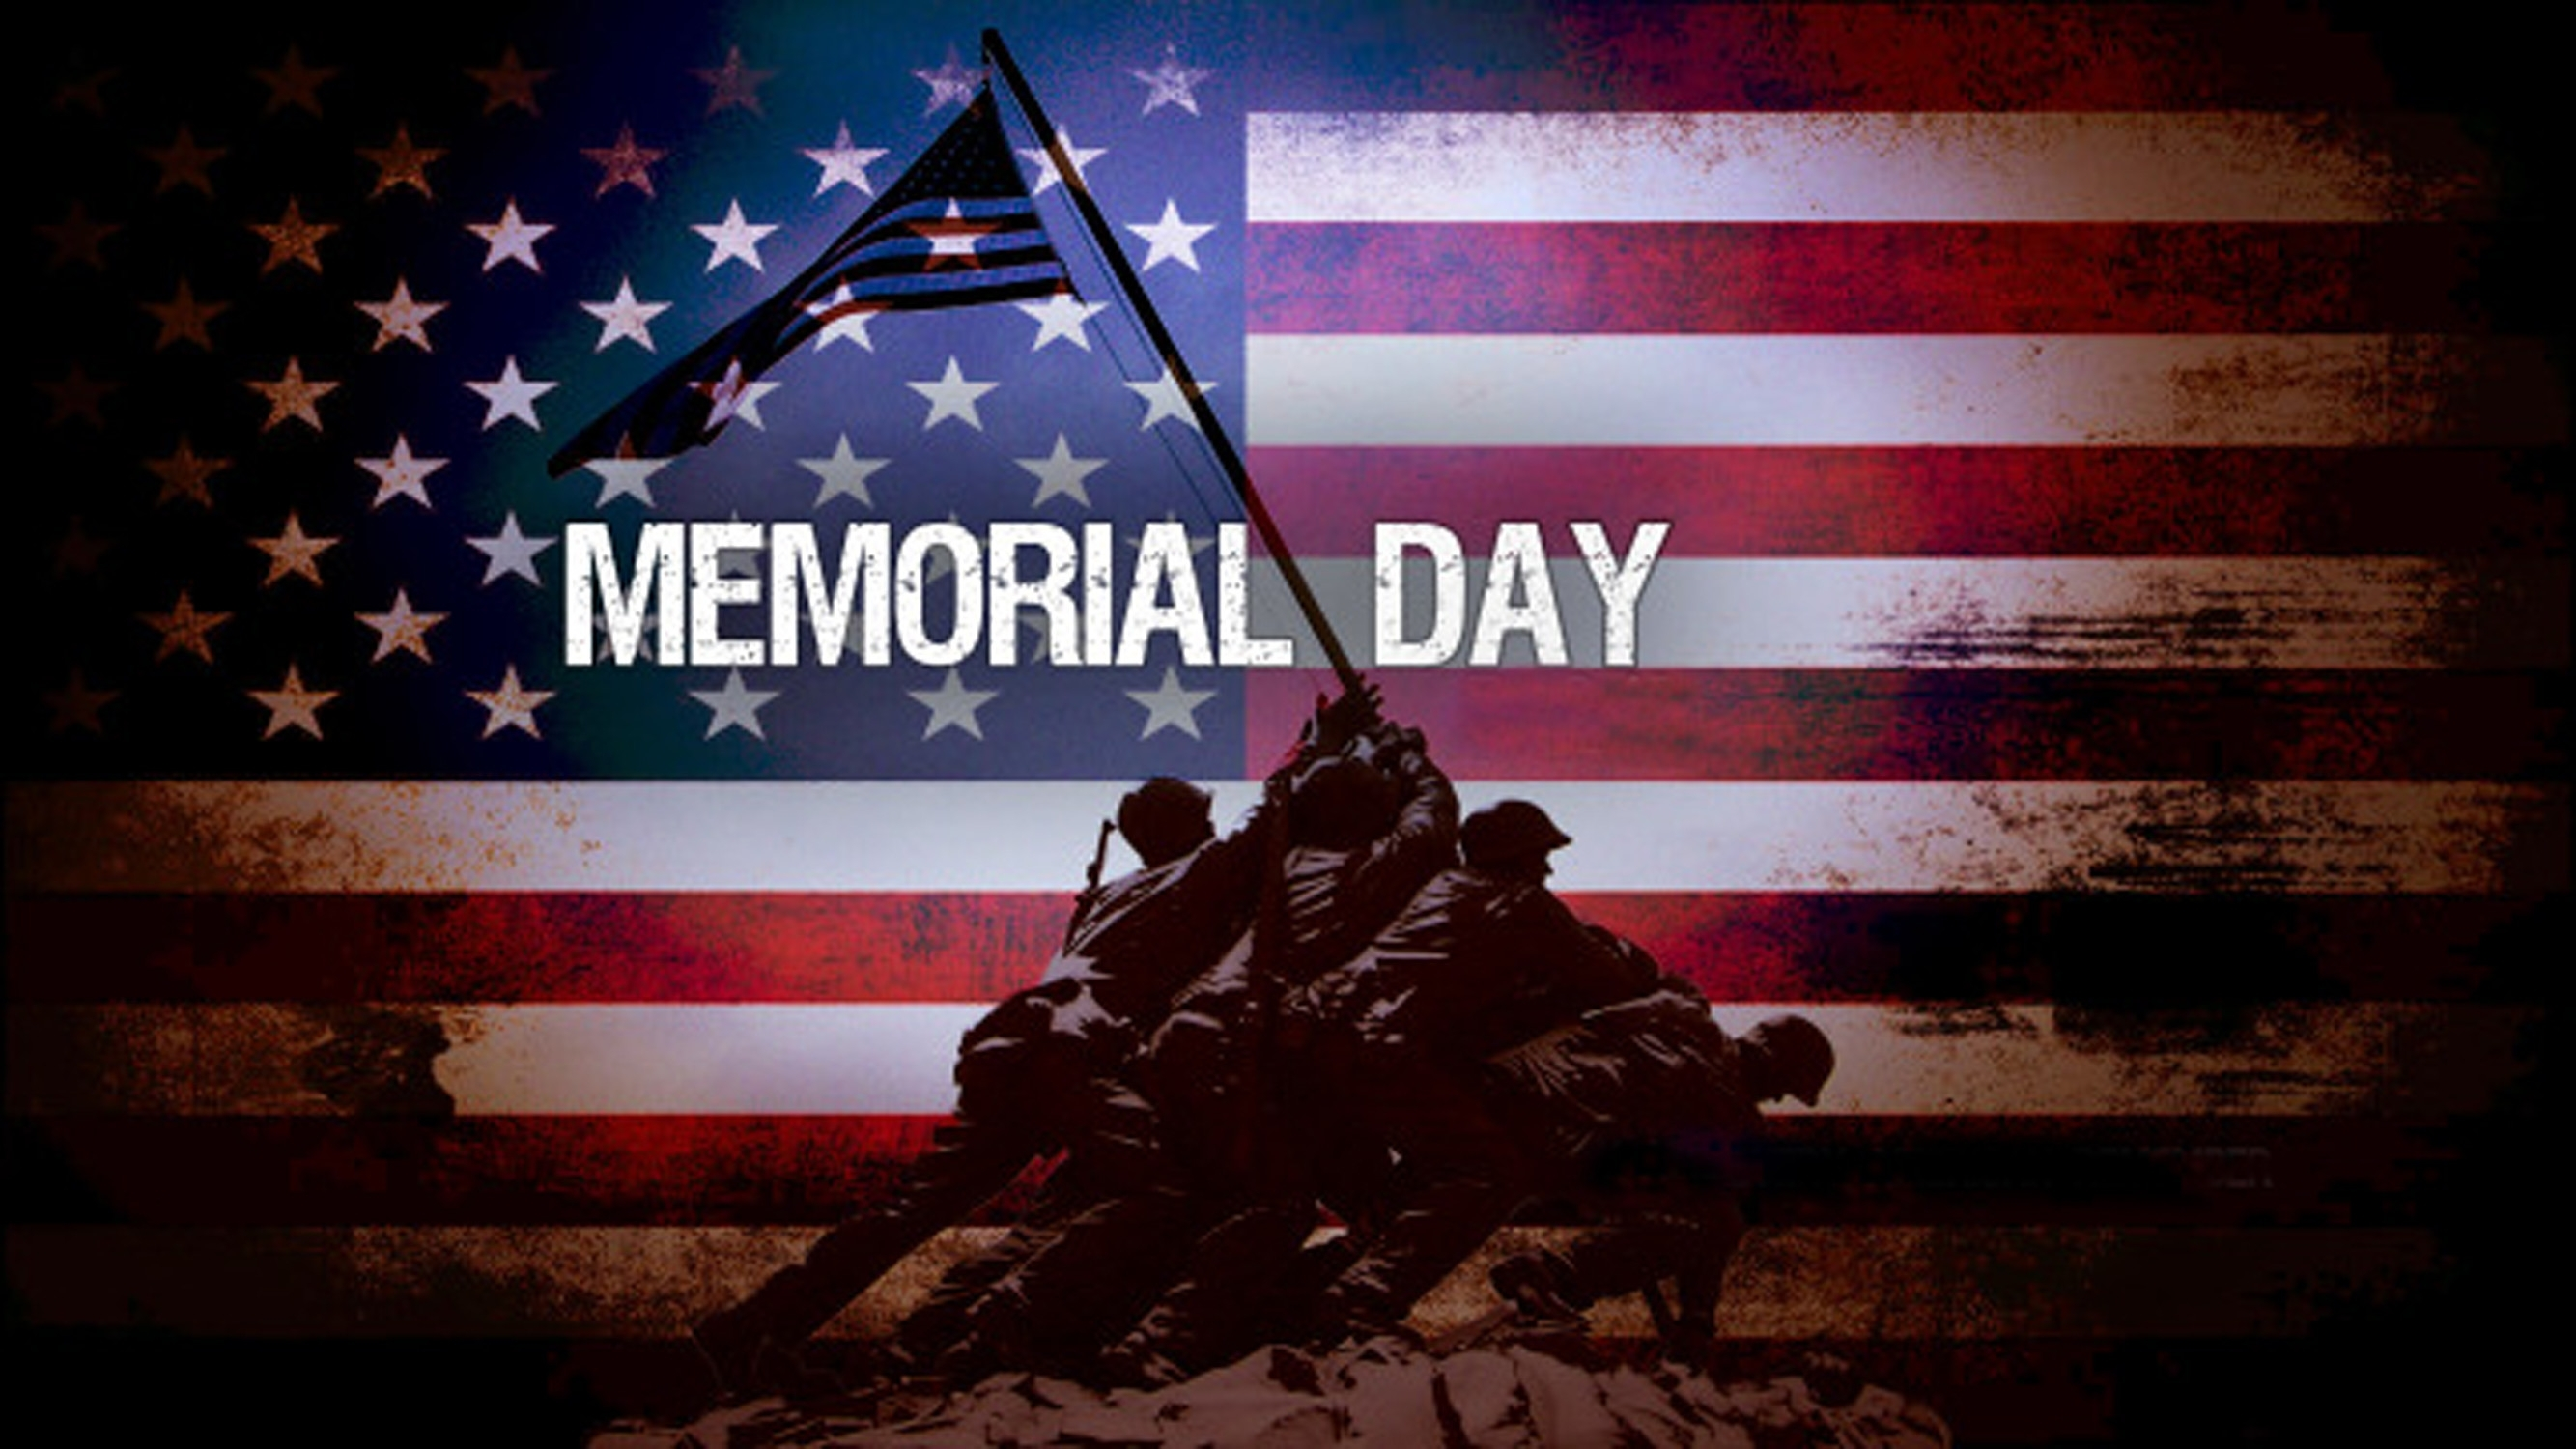 happy memorial day wallpaper (51+ images)